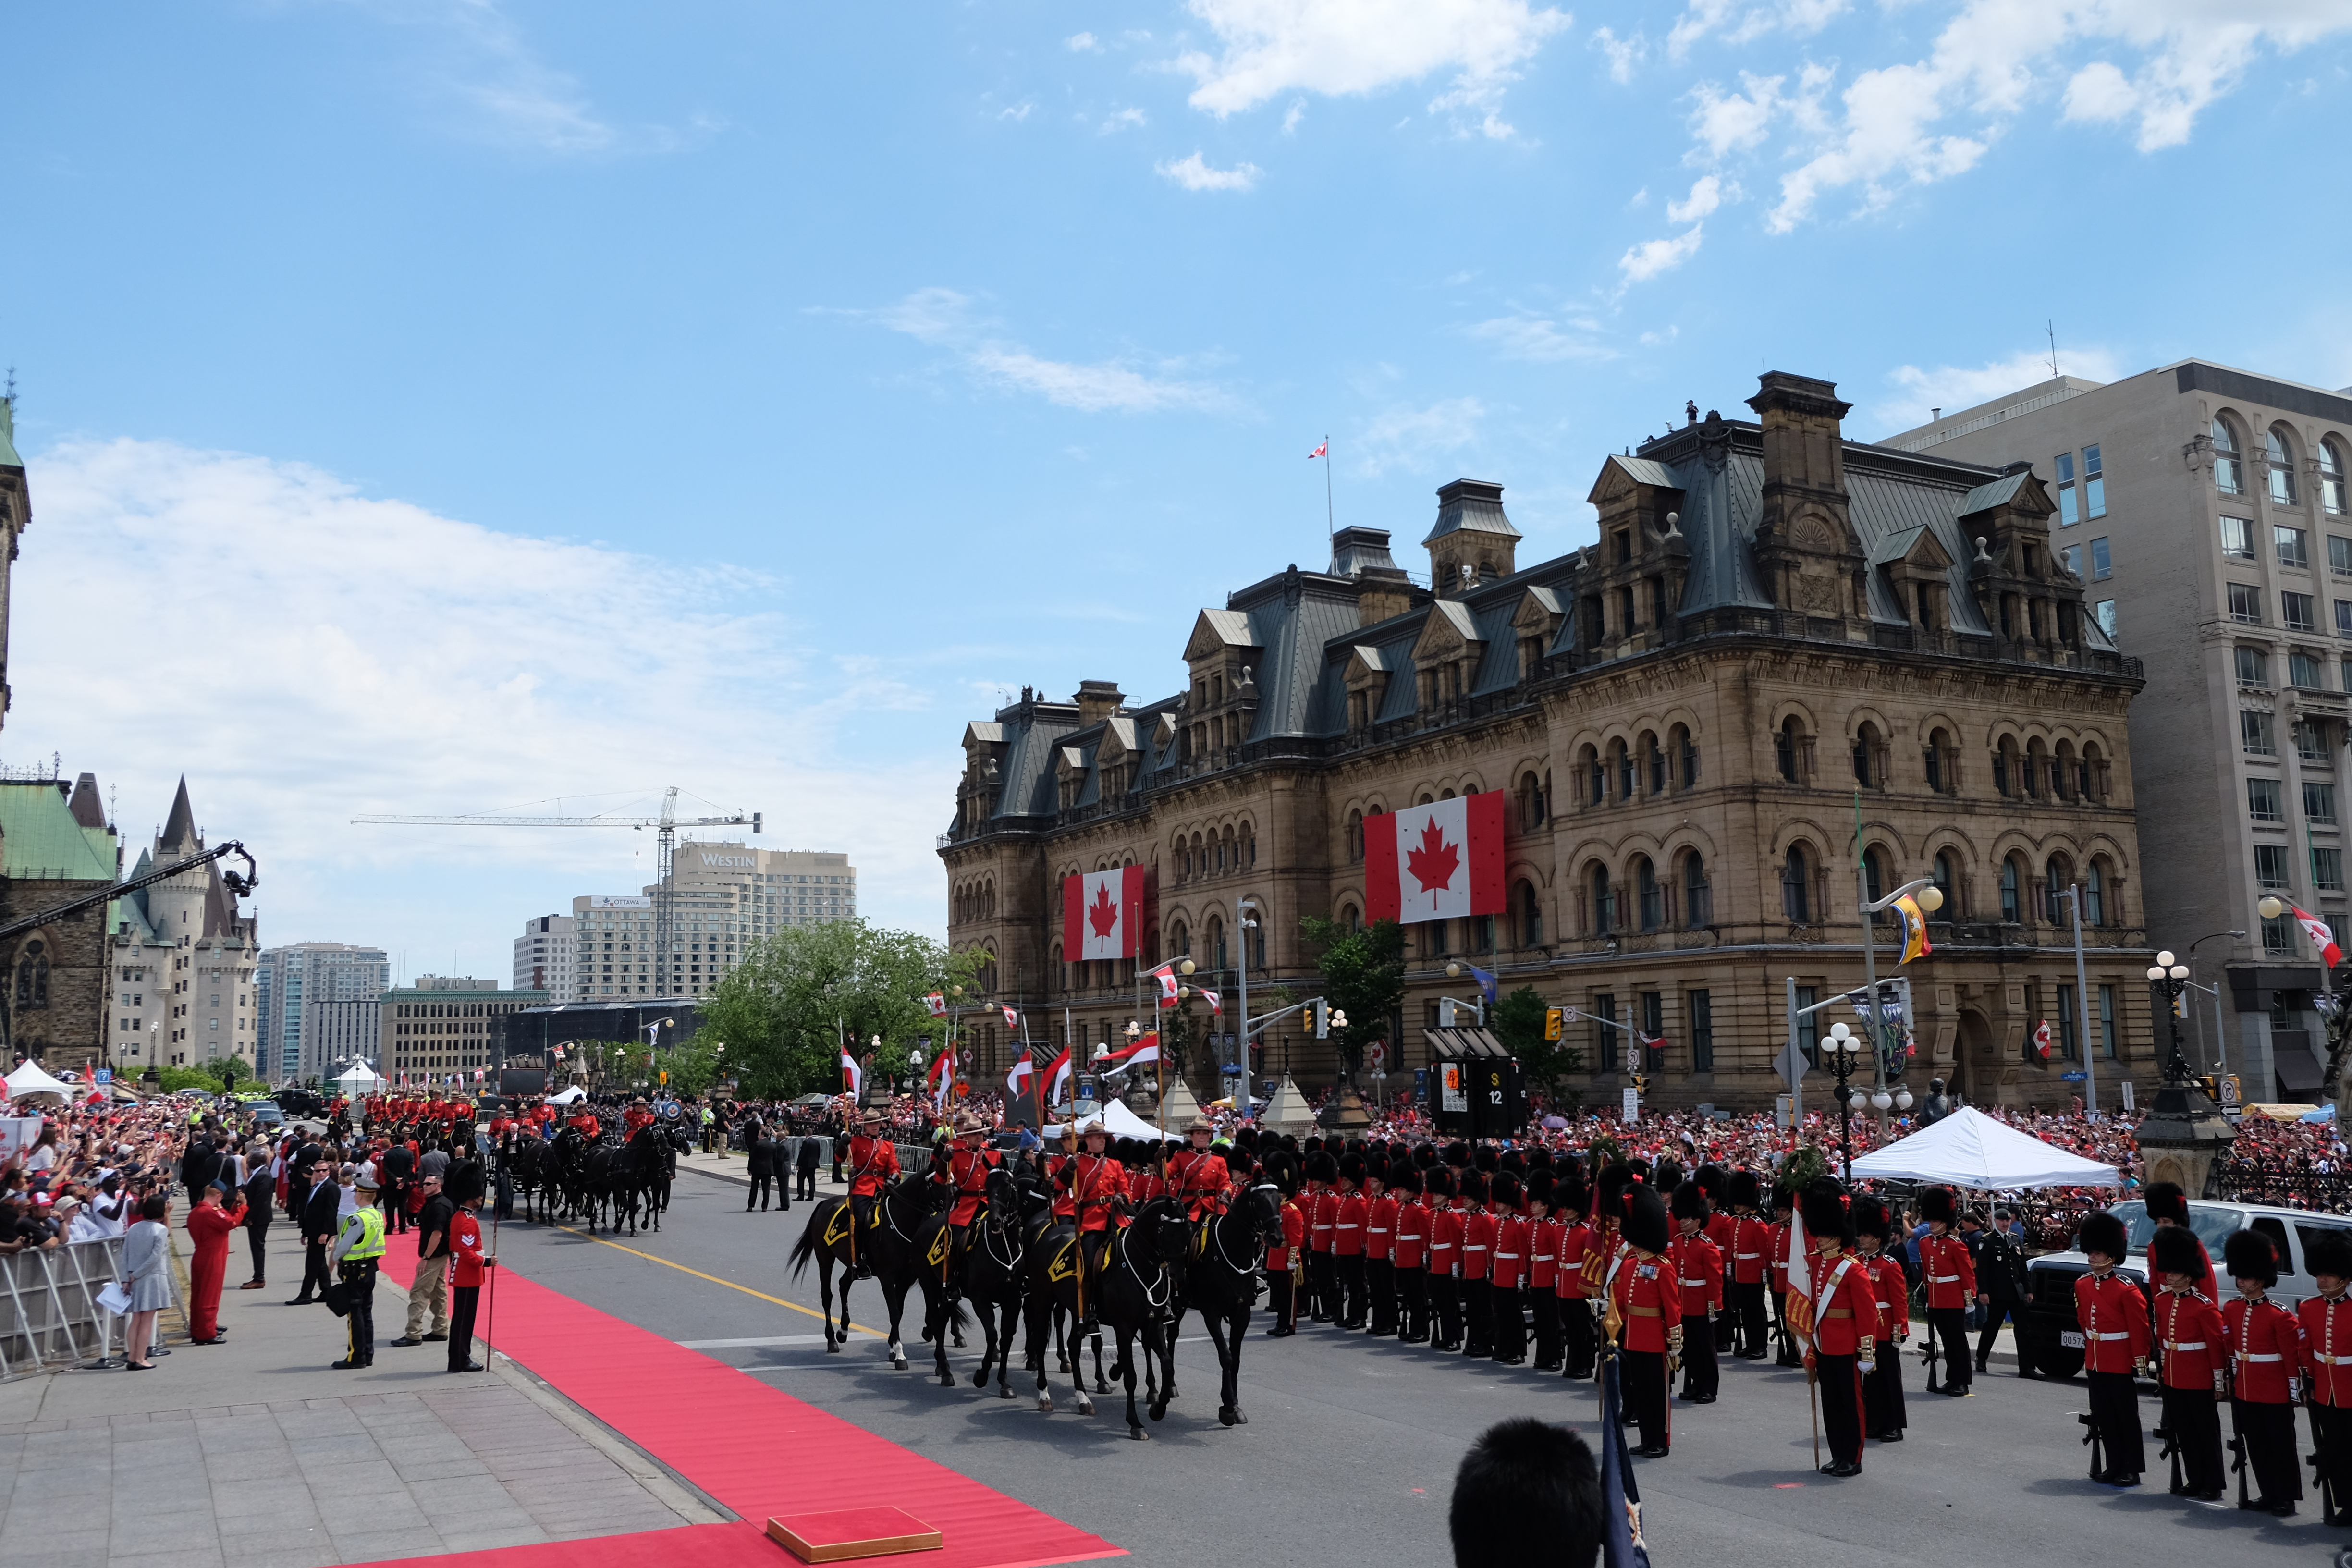 Marching bands and Mounties on horseback; how great is that?